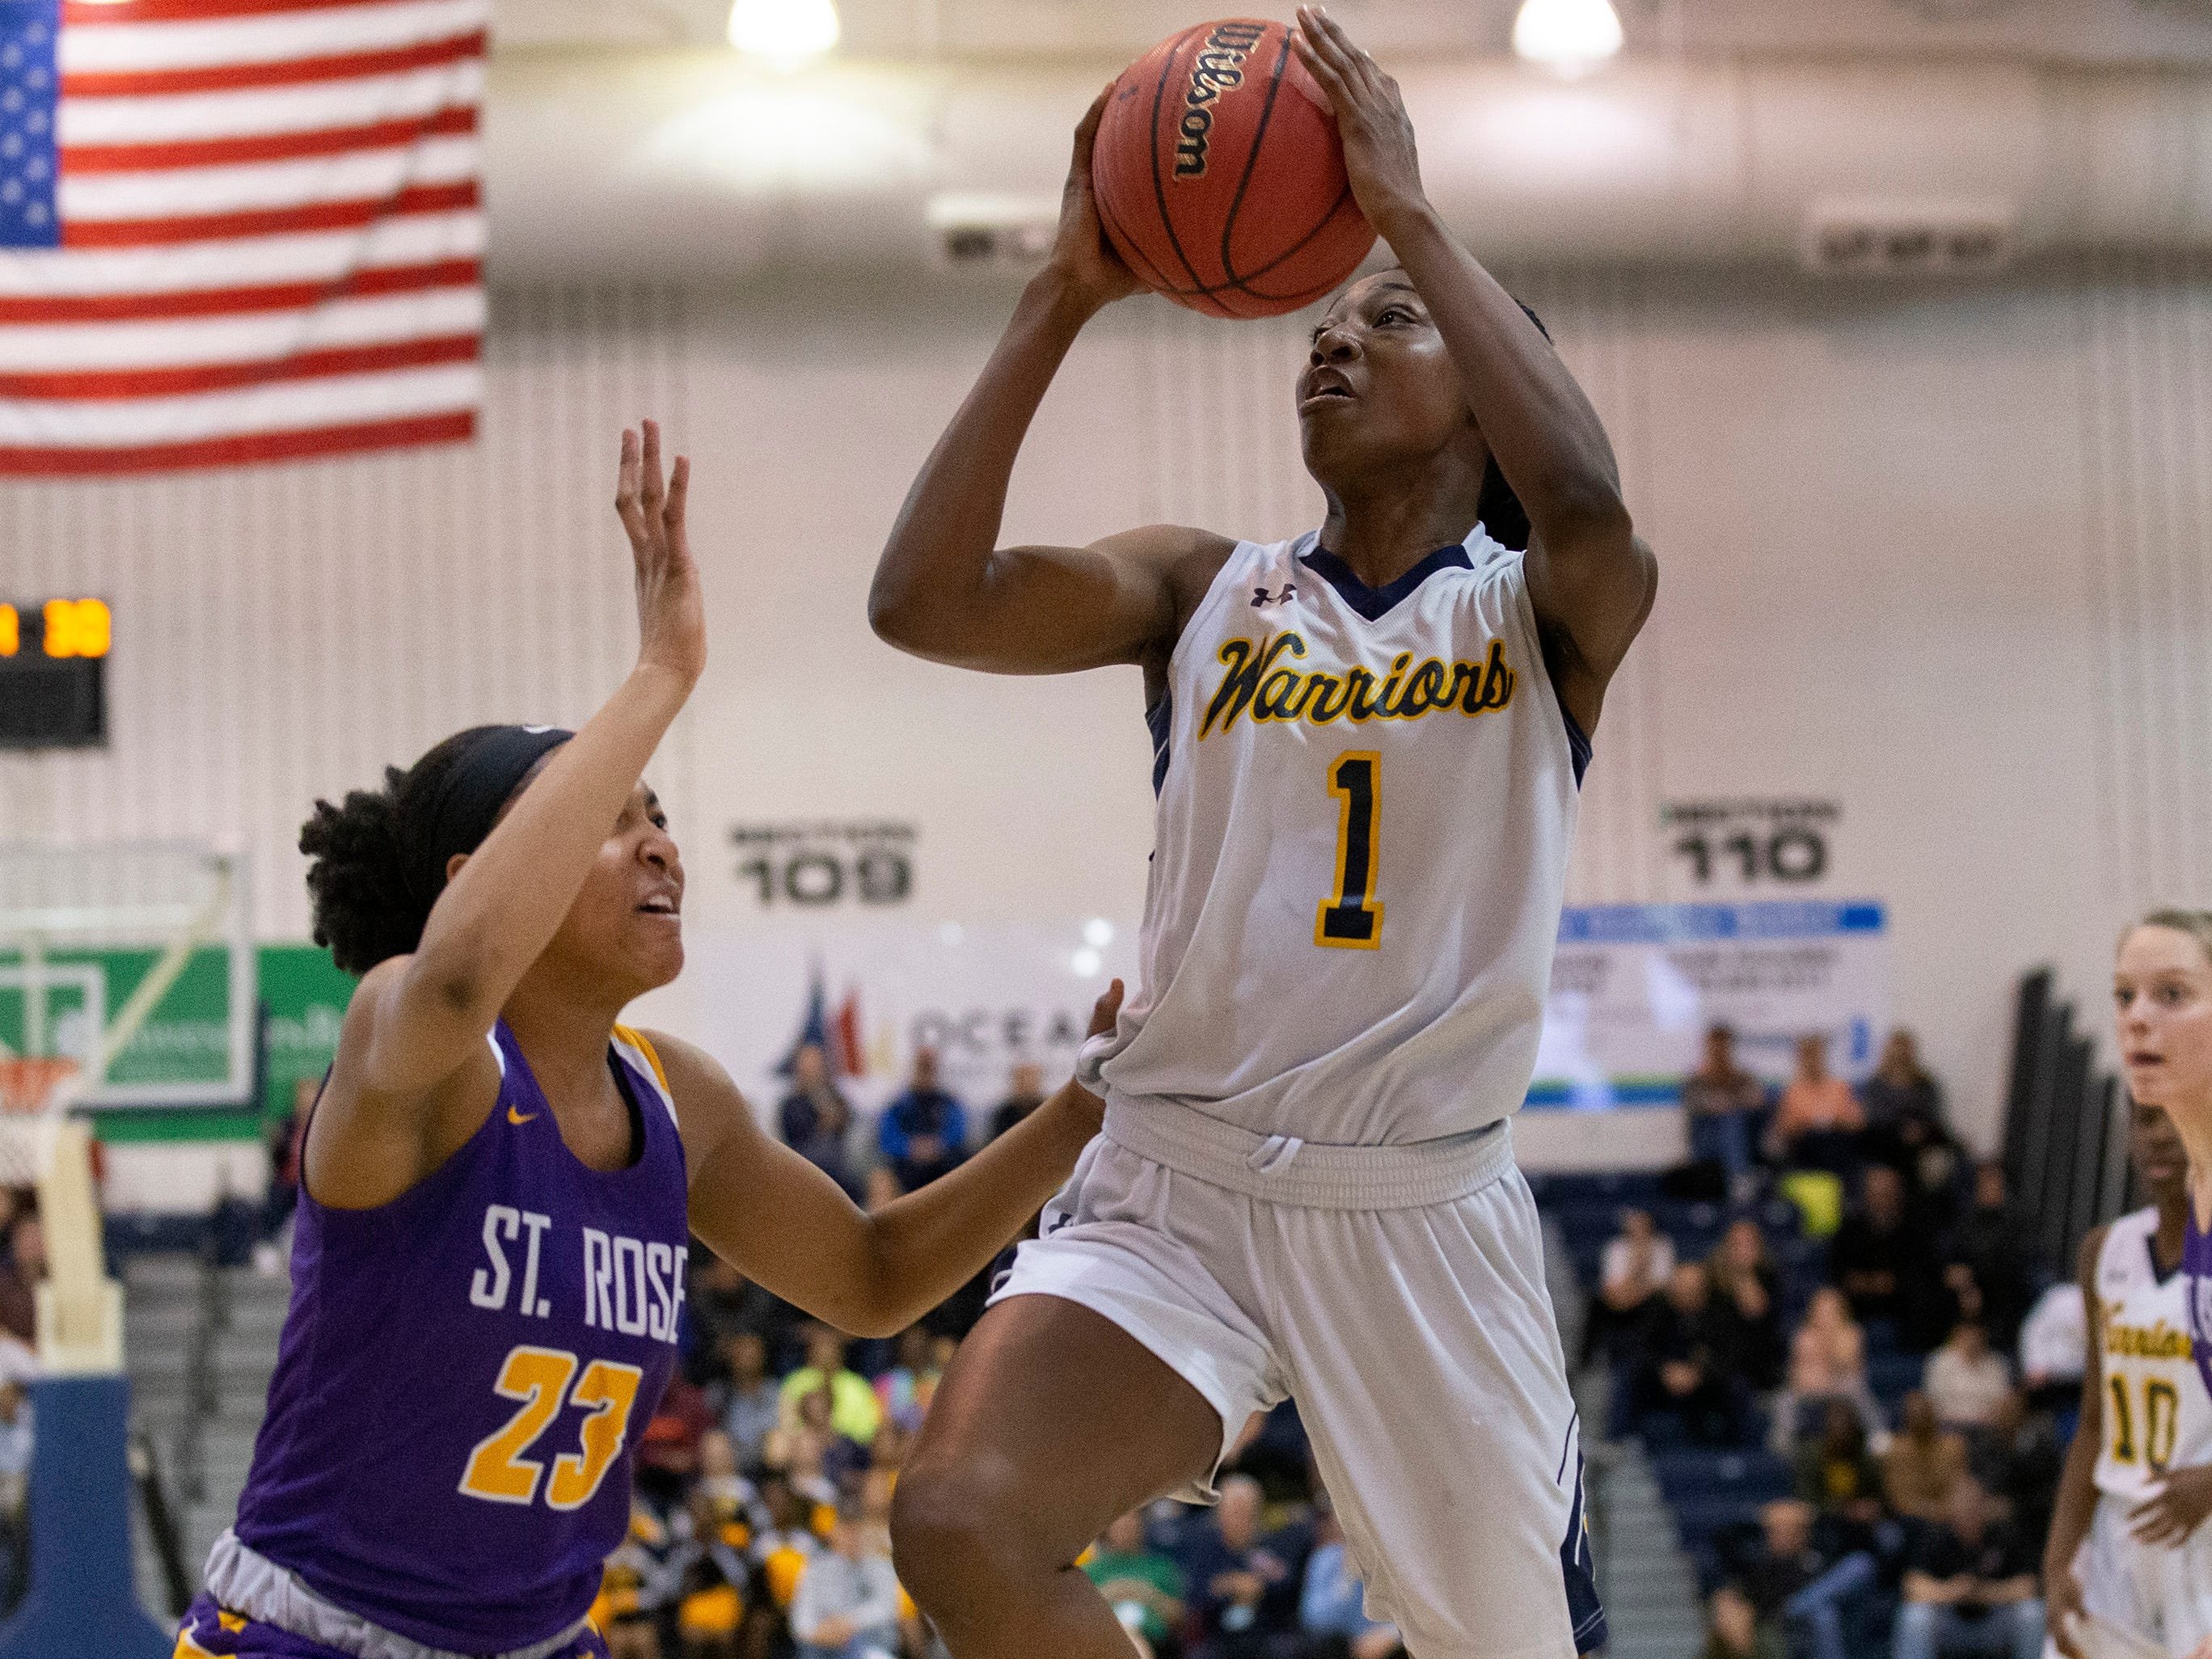 Diamond Miller, Franklin goes up with first half shot. St Rose Girls Basketball vs Franklin High School in NJSIAA Tournament of Champions Semifinal in Toms River on March 14, 2019.